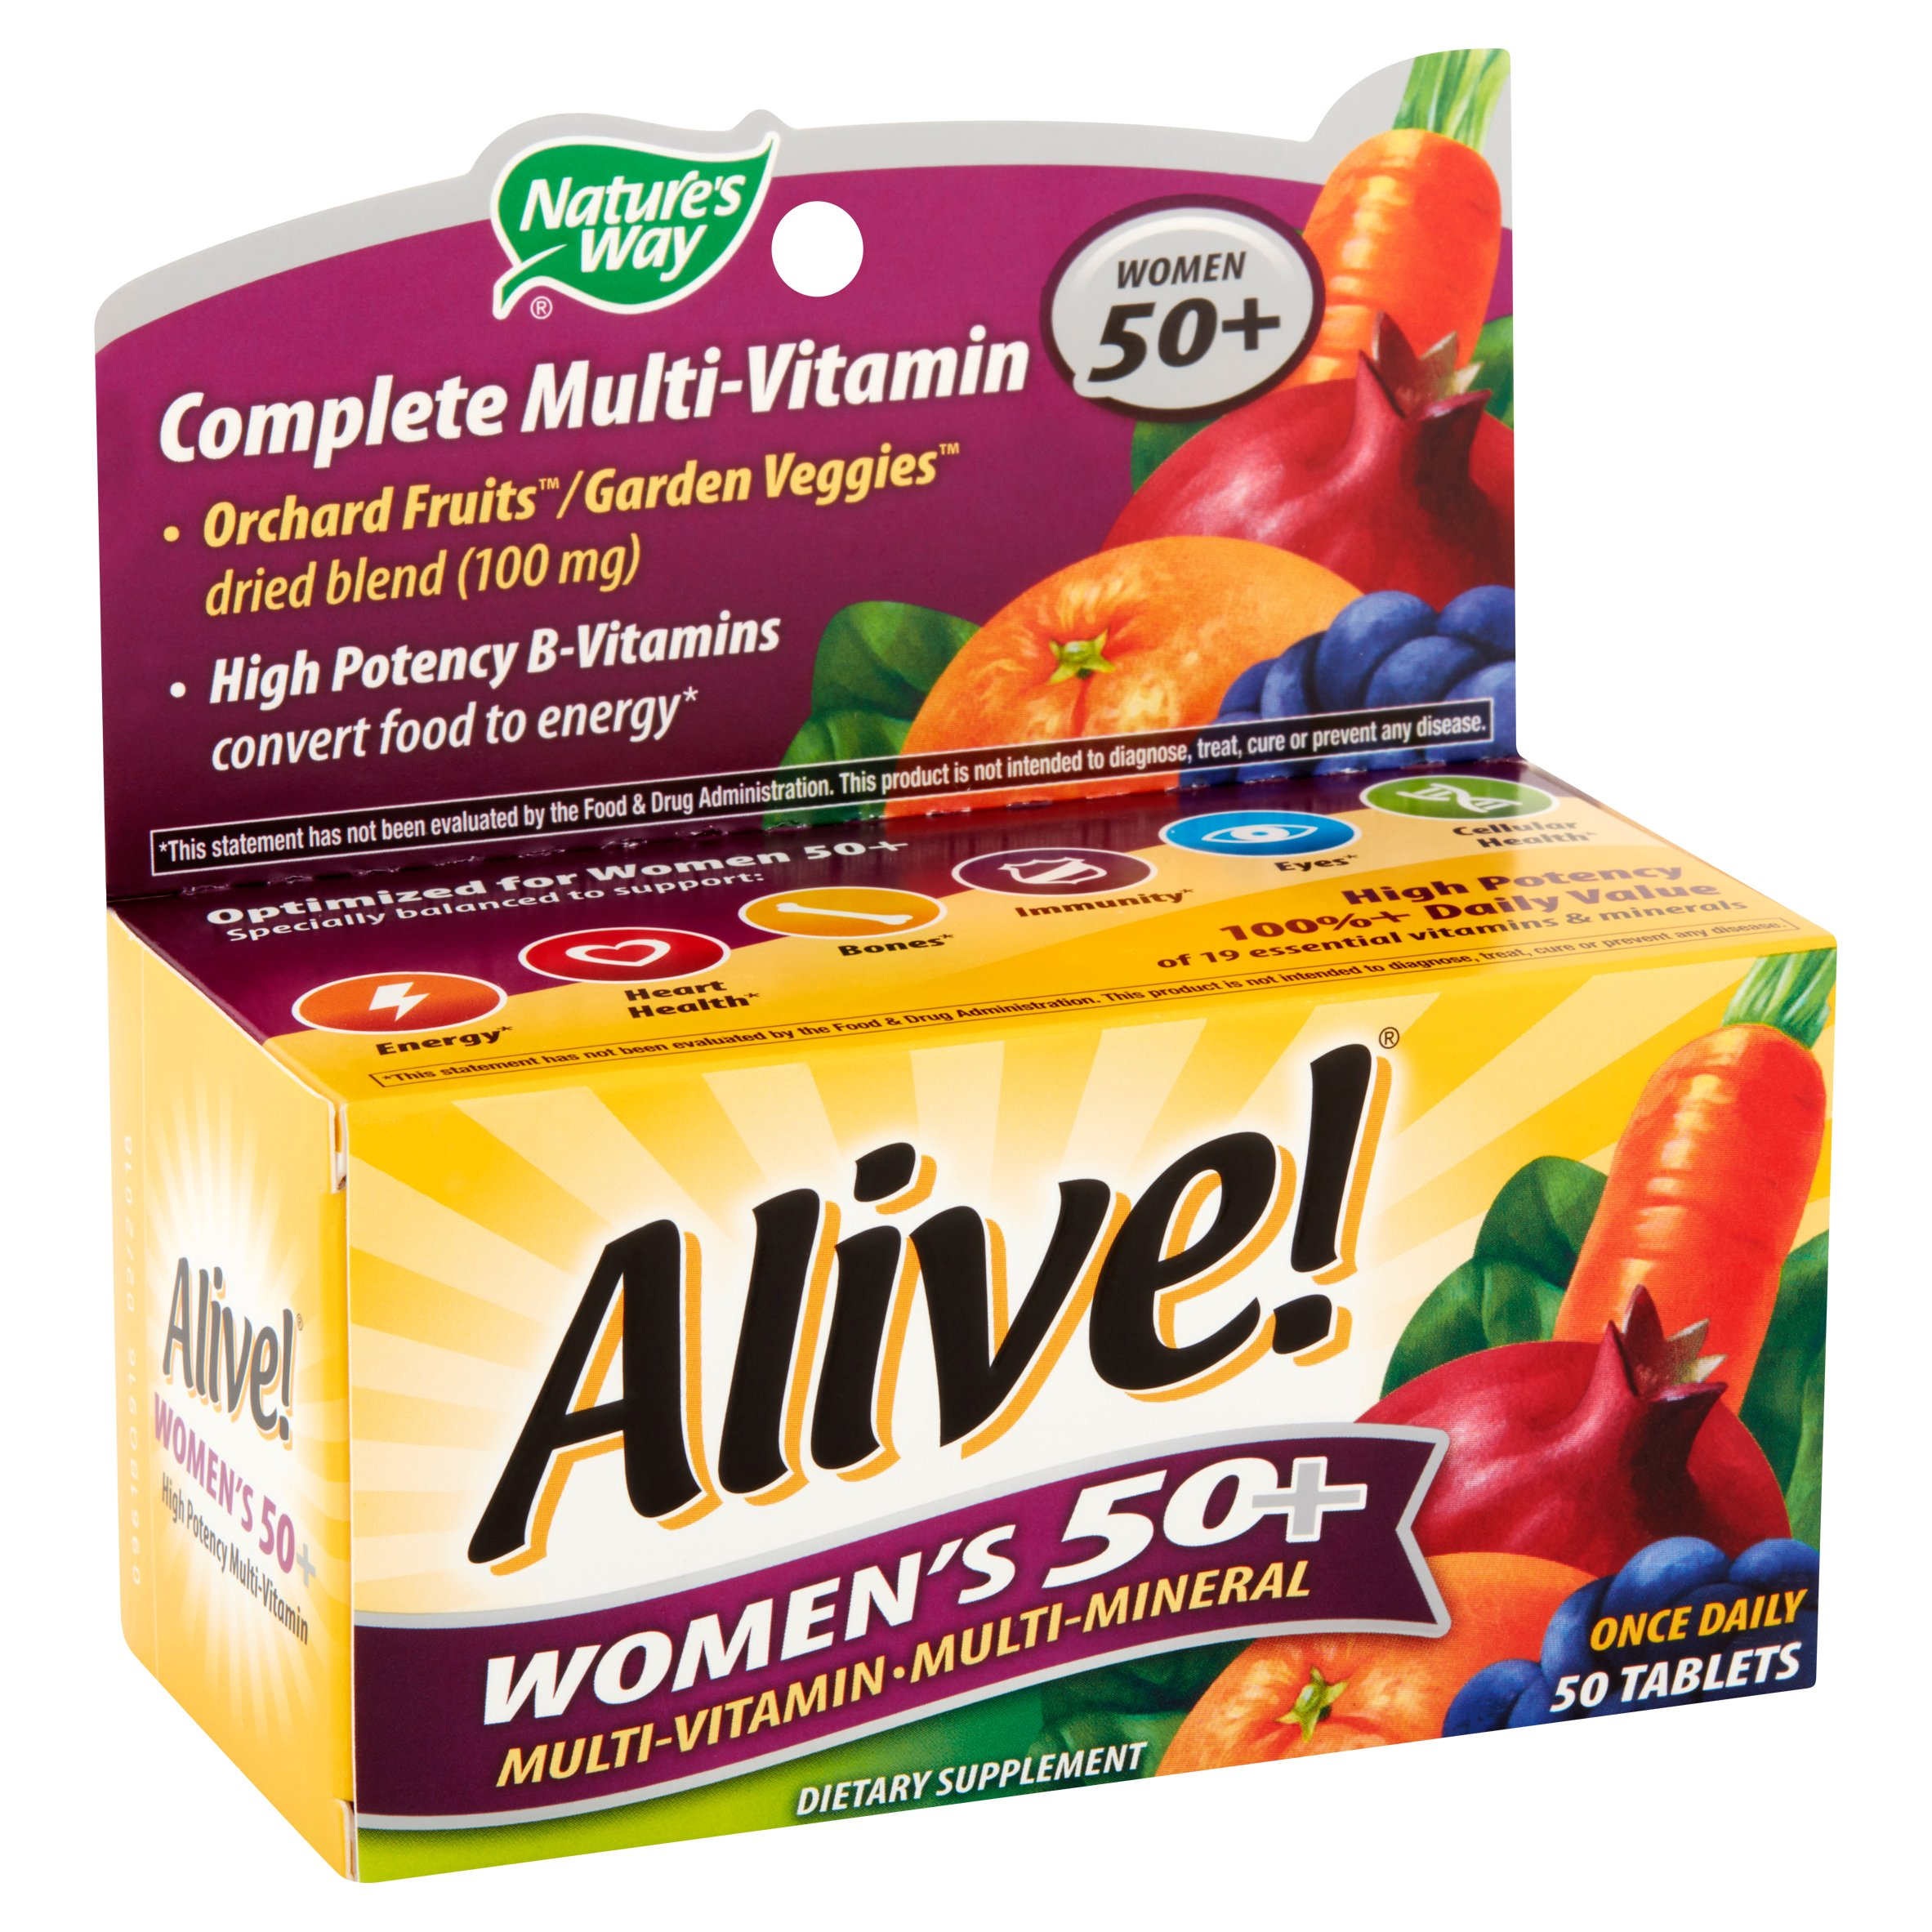 Nature's Way Alive! Women's 50+ Vitamins, Multivitamin Supplement Tablets, 50 Count